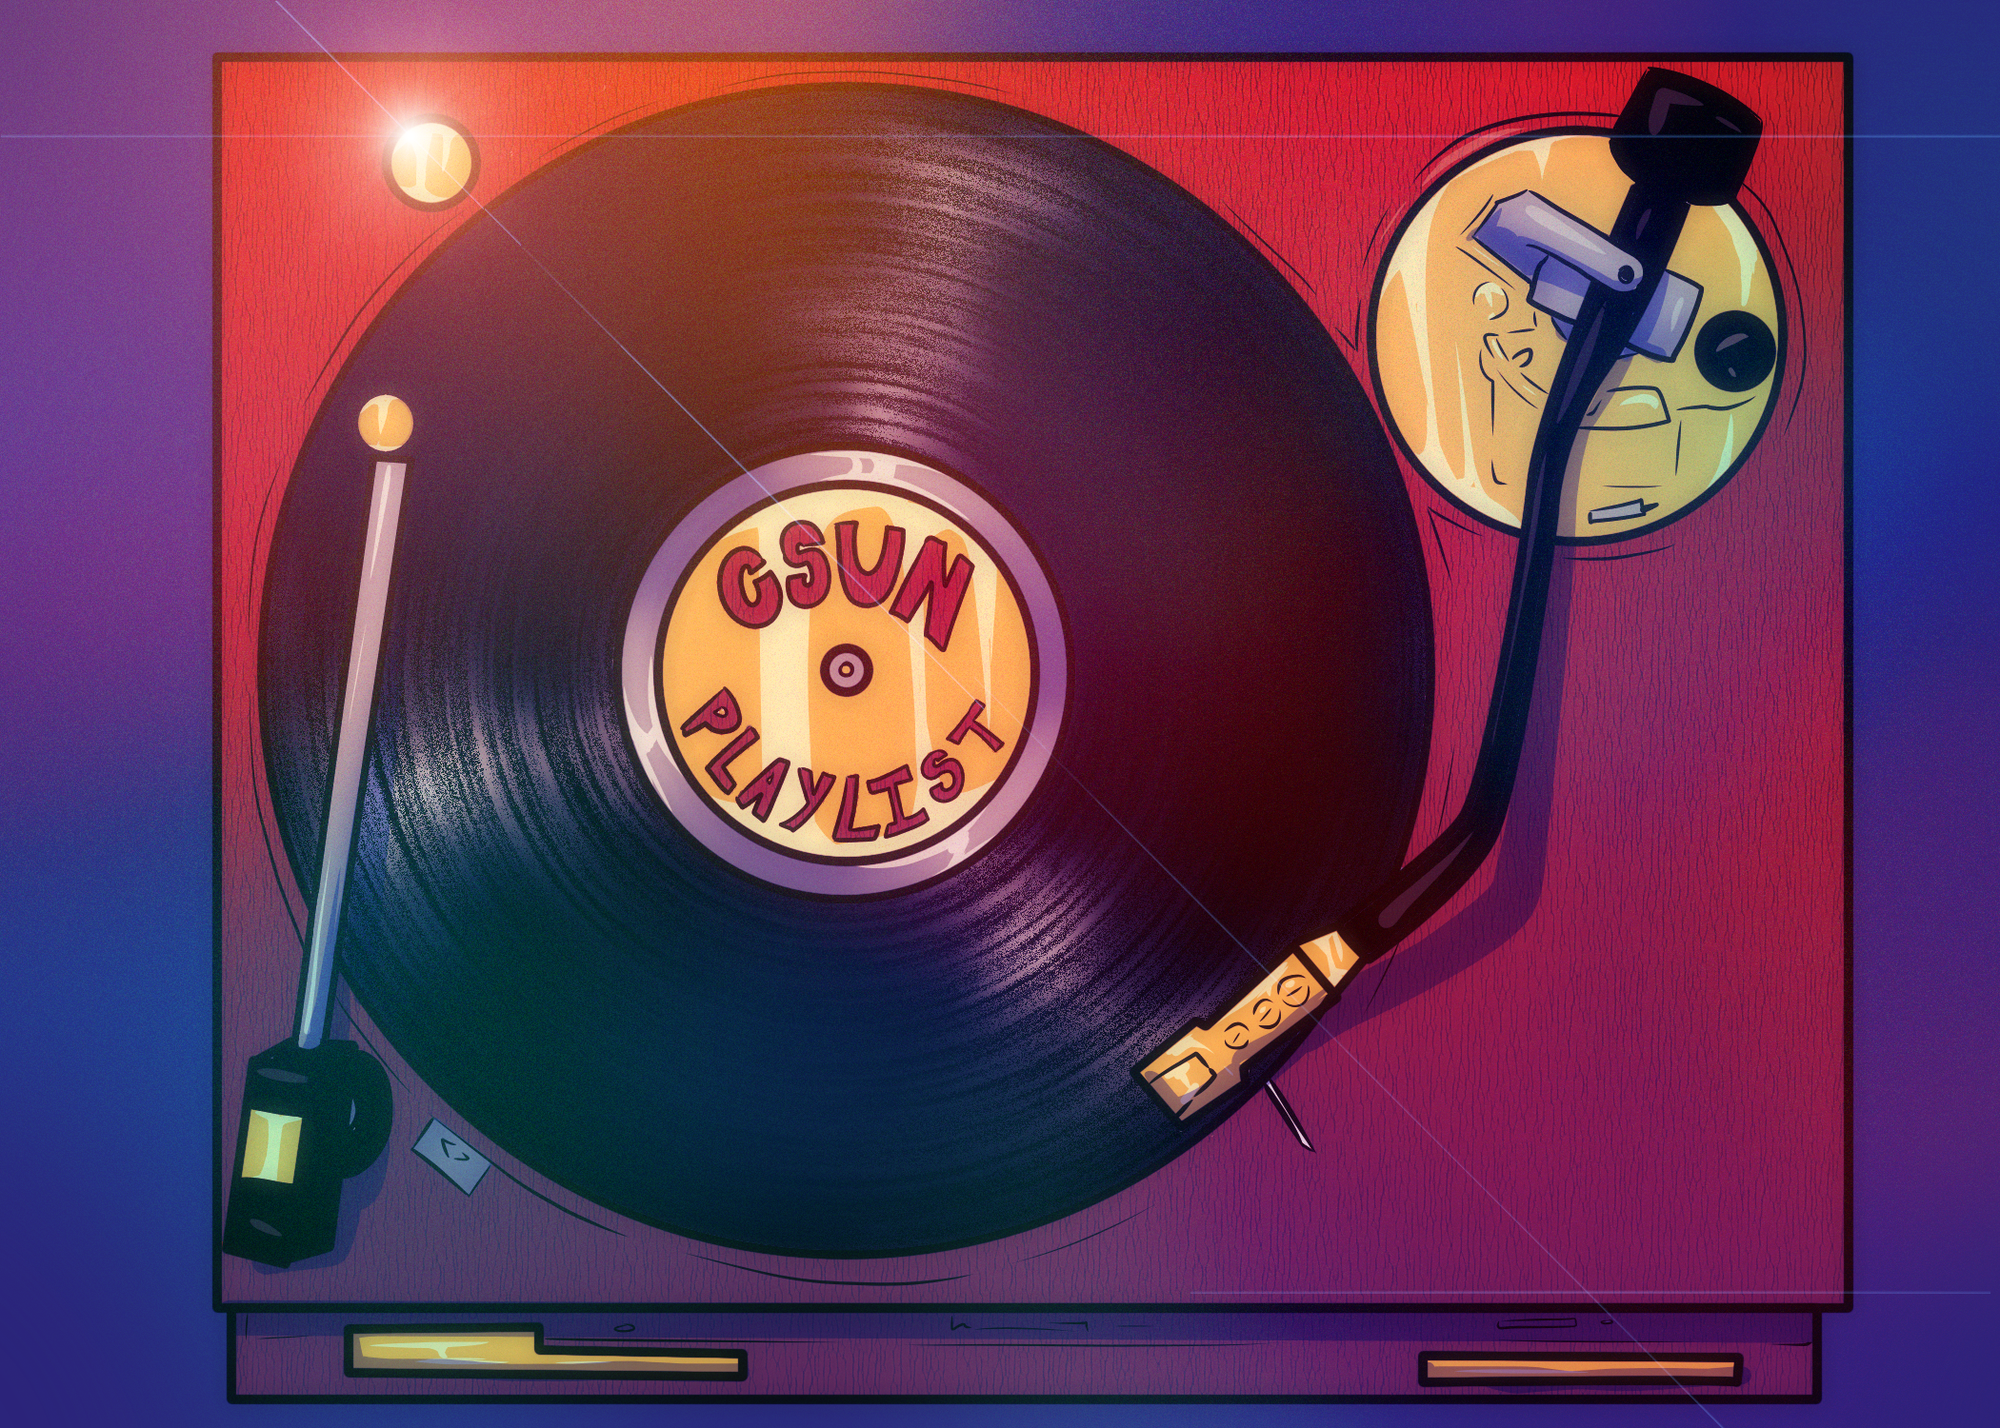 Illustration by Sarah Hofstedt